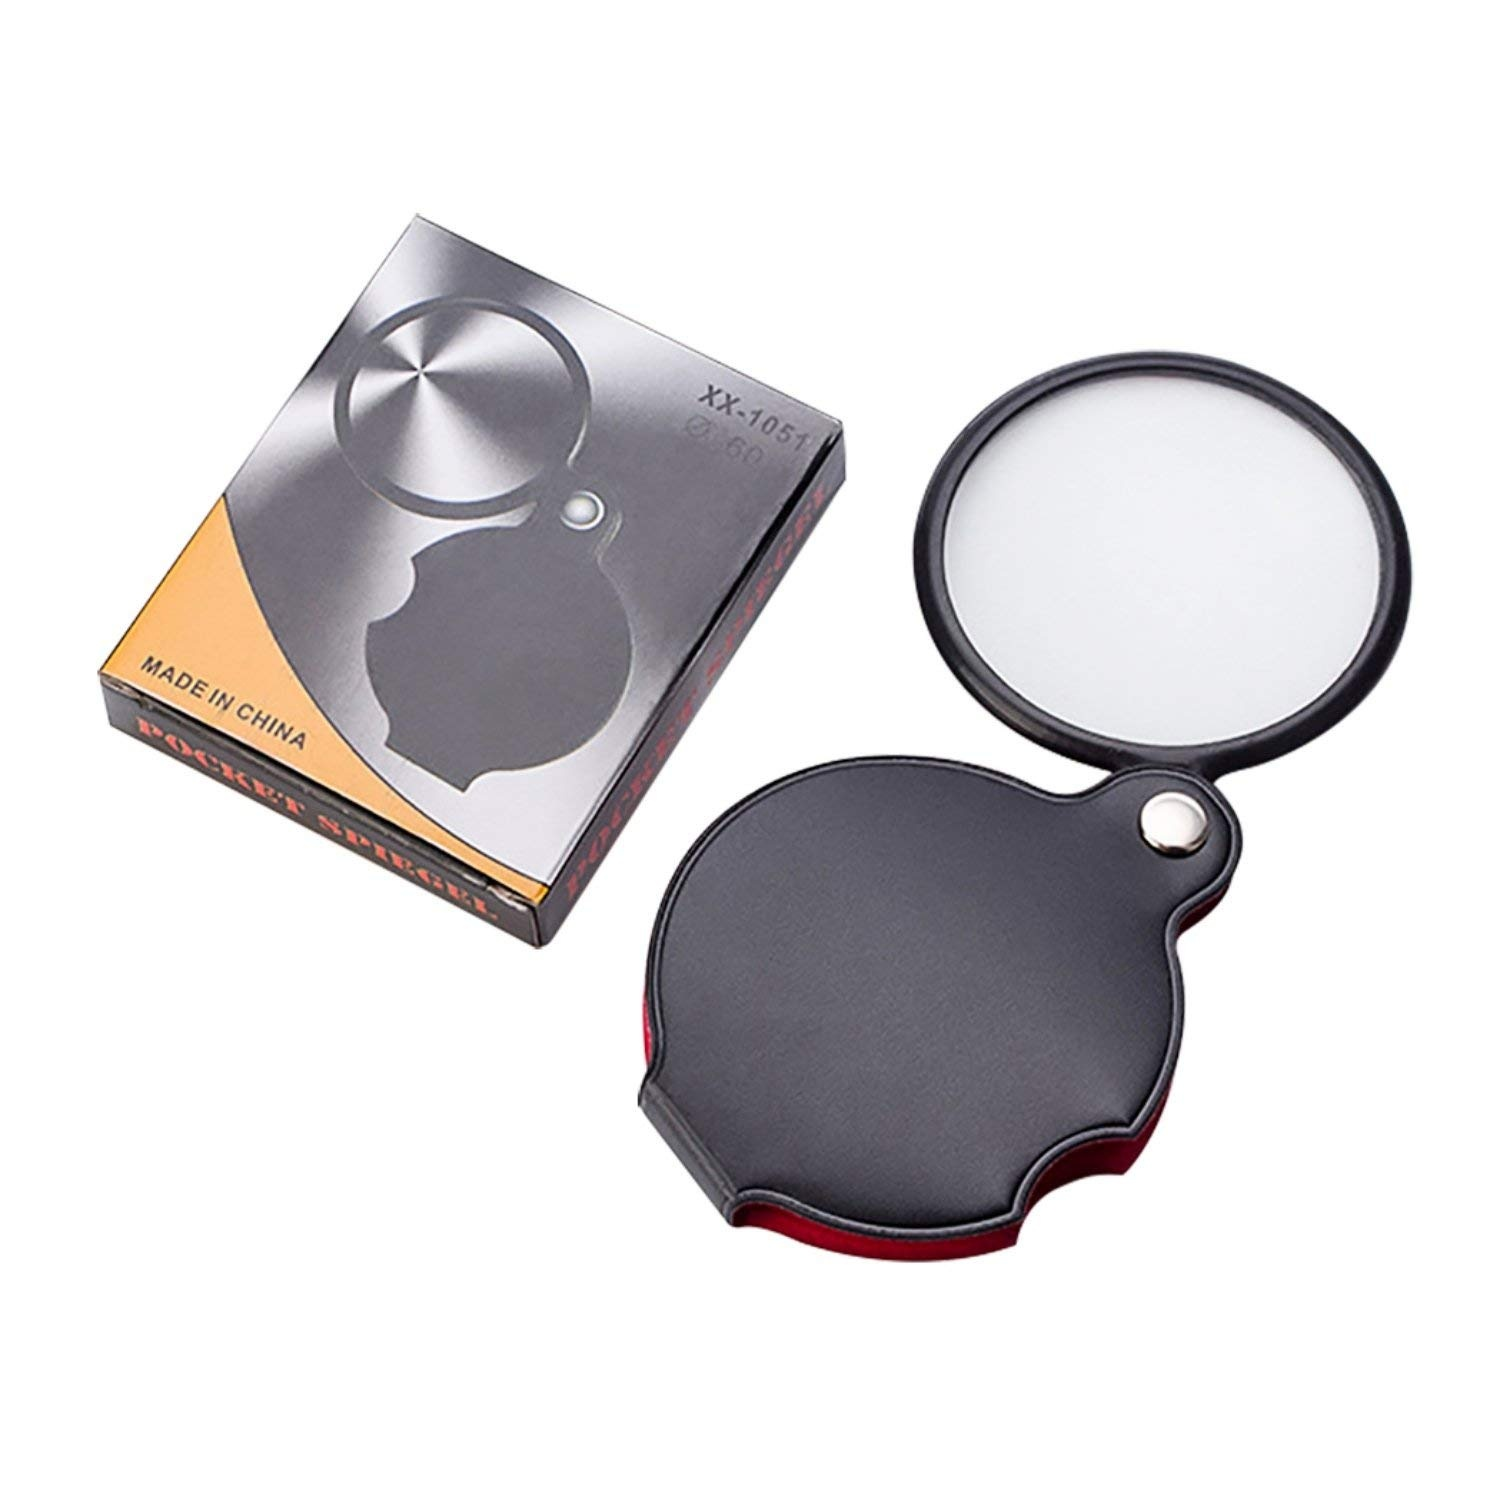 8X Magnifying Glass 50mm Folding Pocket Handheld Rotating Loupe with Leather FOR